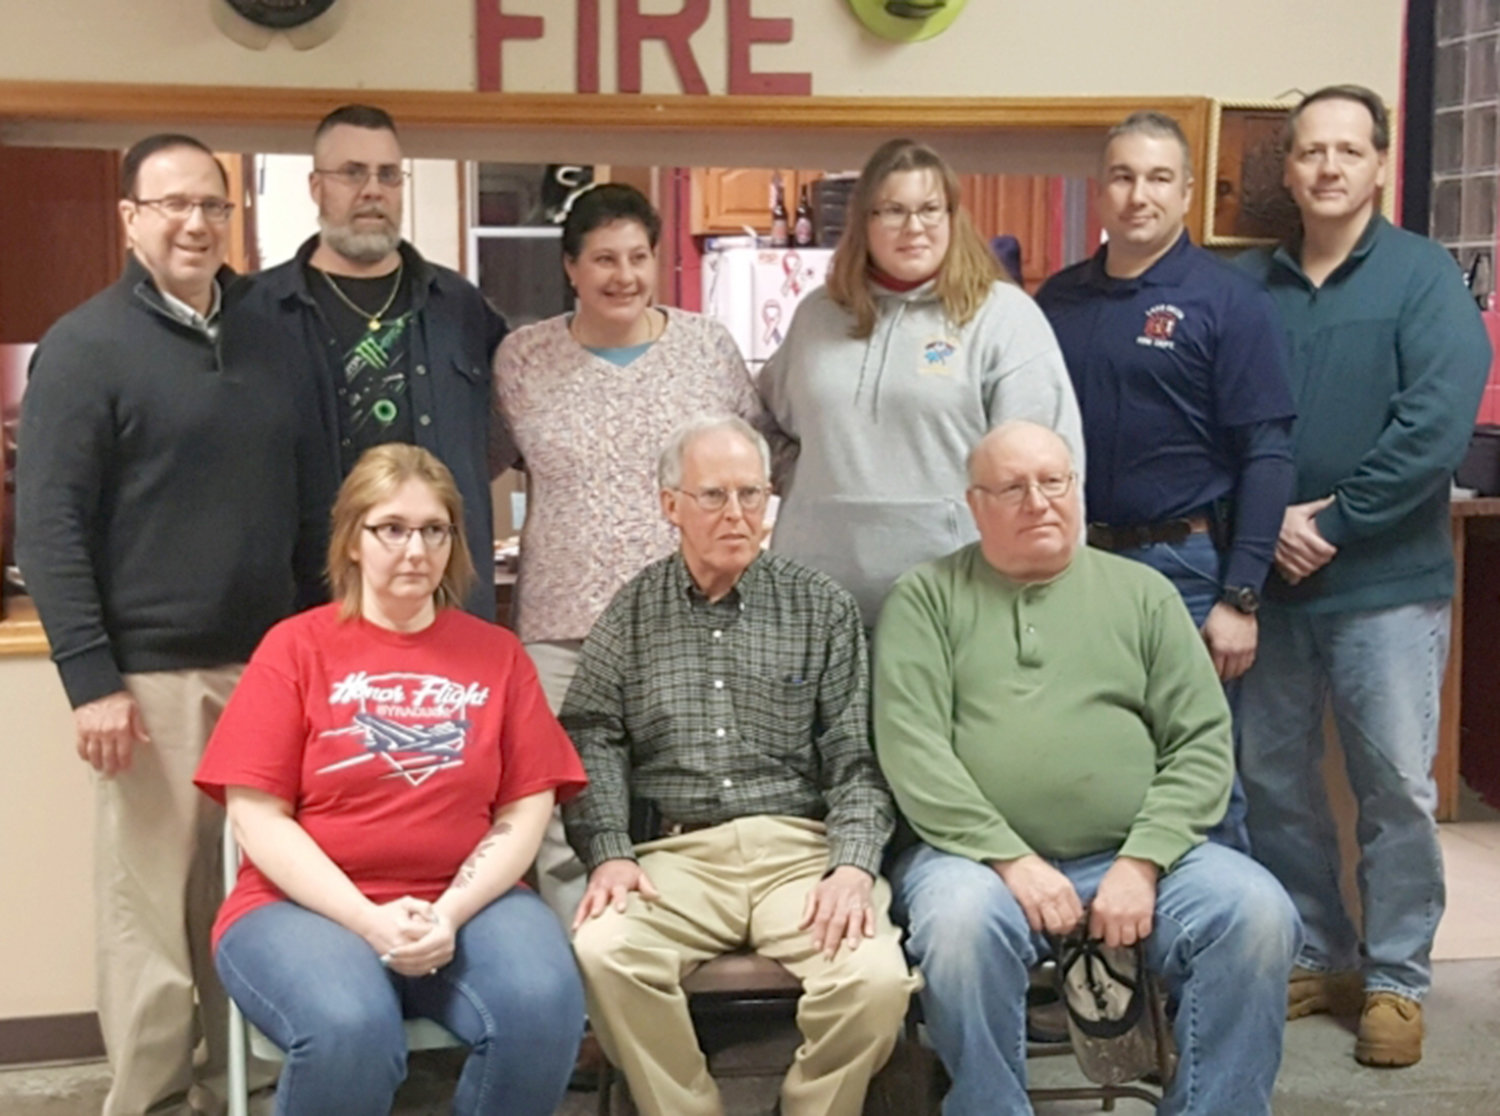 FIRE DEPARTMENT INSTALLATIONS — Among the Lake Delta Volunteer Fire Department's installations of civil and fire officers for 2019, in back: State Sen. Joseph Griffo, who swore in the officers; Jeff Lemieux, board member; Lauri Tamburrino, treasurer; Amy Evans, vice president; Rich Abdou, board member; Dennis Sexton, secretary. In front: Pam Lemieux, board member; Ed Davis, president; Dan Gorski, chairman of the board.